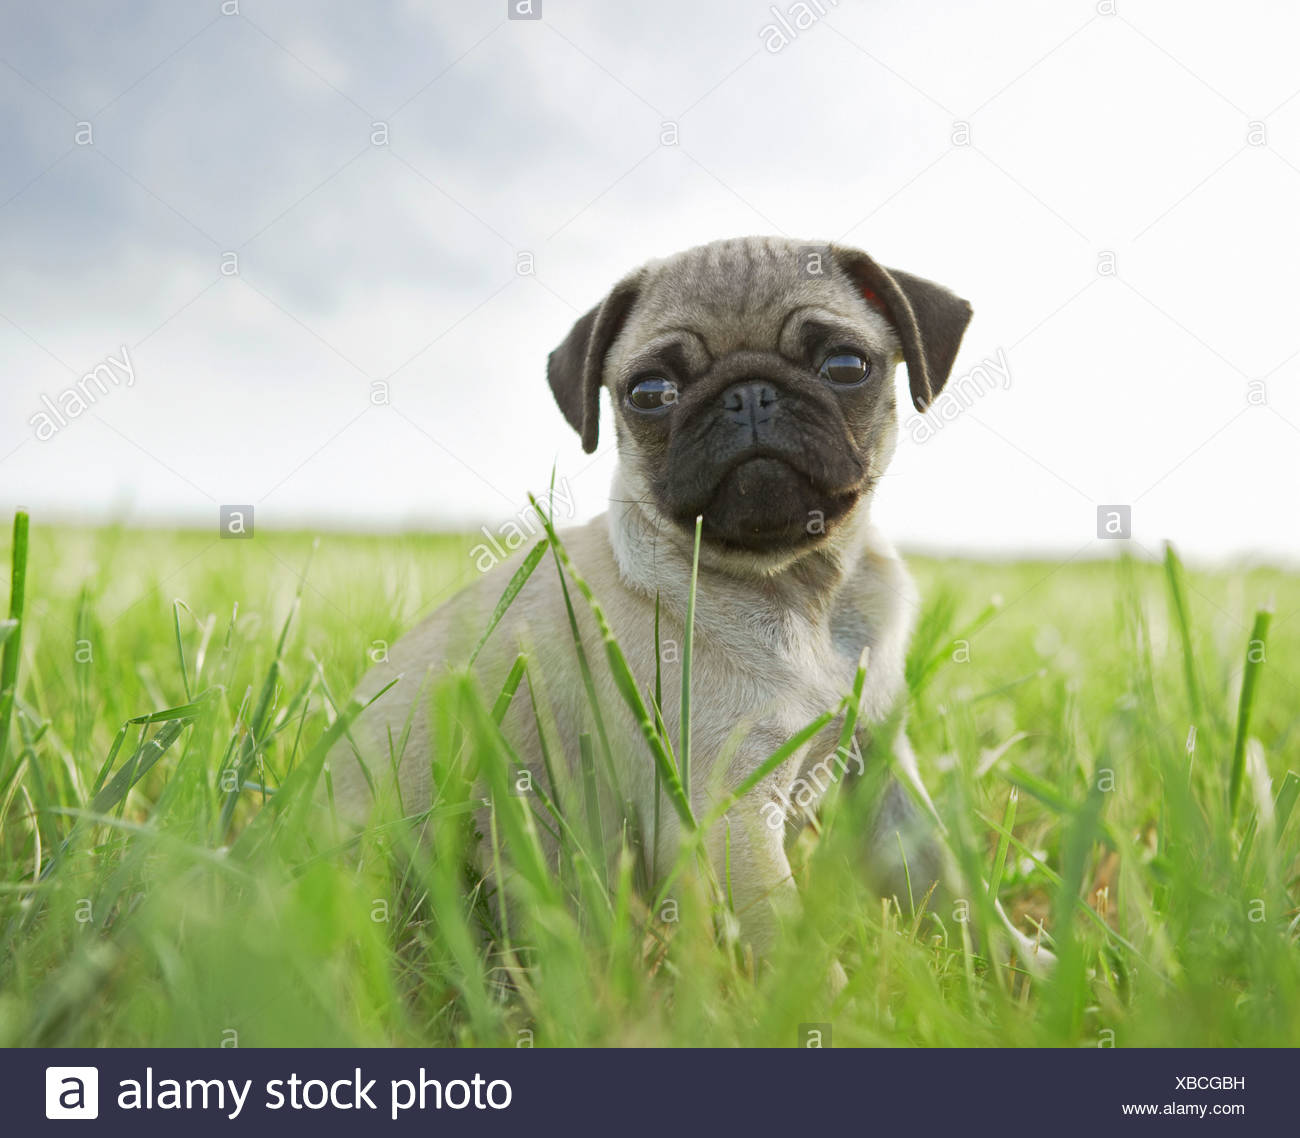 pug dog - puppy sitting on meadow Stock Photo